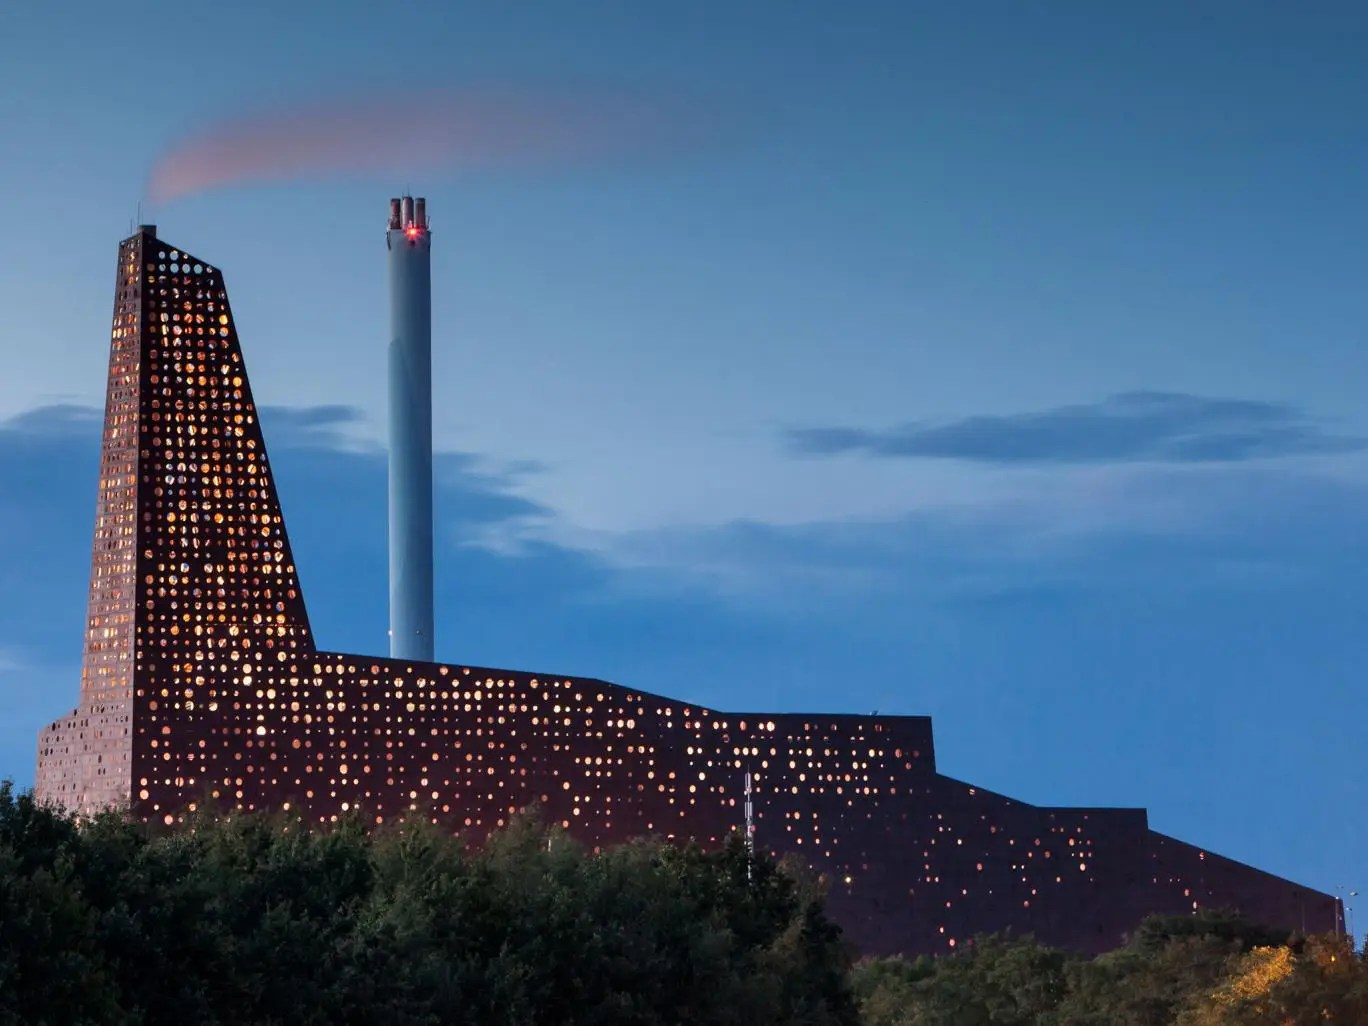 The Roskilde incineration line Nuclear Power Station in Denmark.